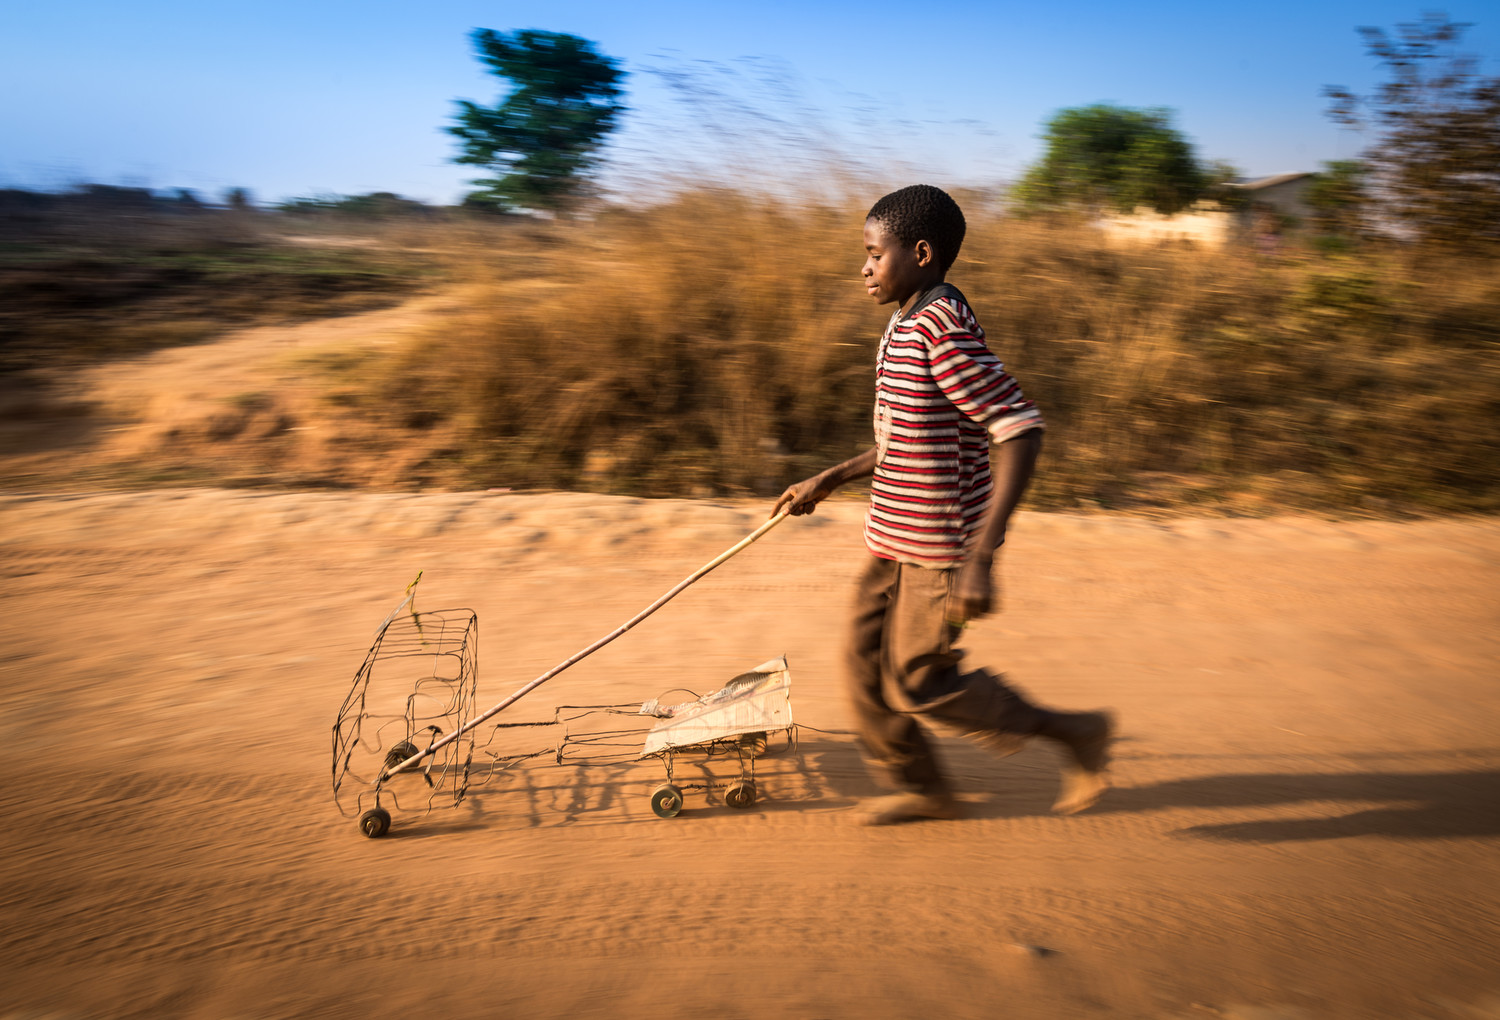 Felix Kansapato, 13, pushes a toy truck made out of wire and cardboard down a road in Kapululwe, Zambia. Felix created something from nothing, using only the materials available: scrap pieces of wire, cardboard, and old wooden wheels. ©2015 Eugene Lee/World Vision